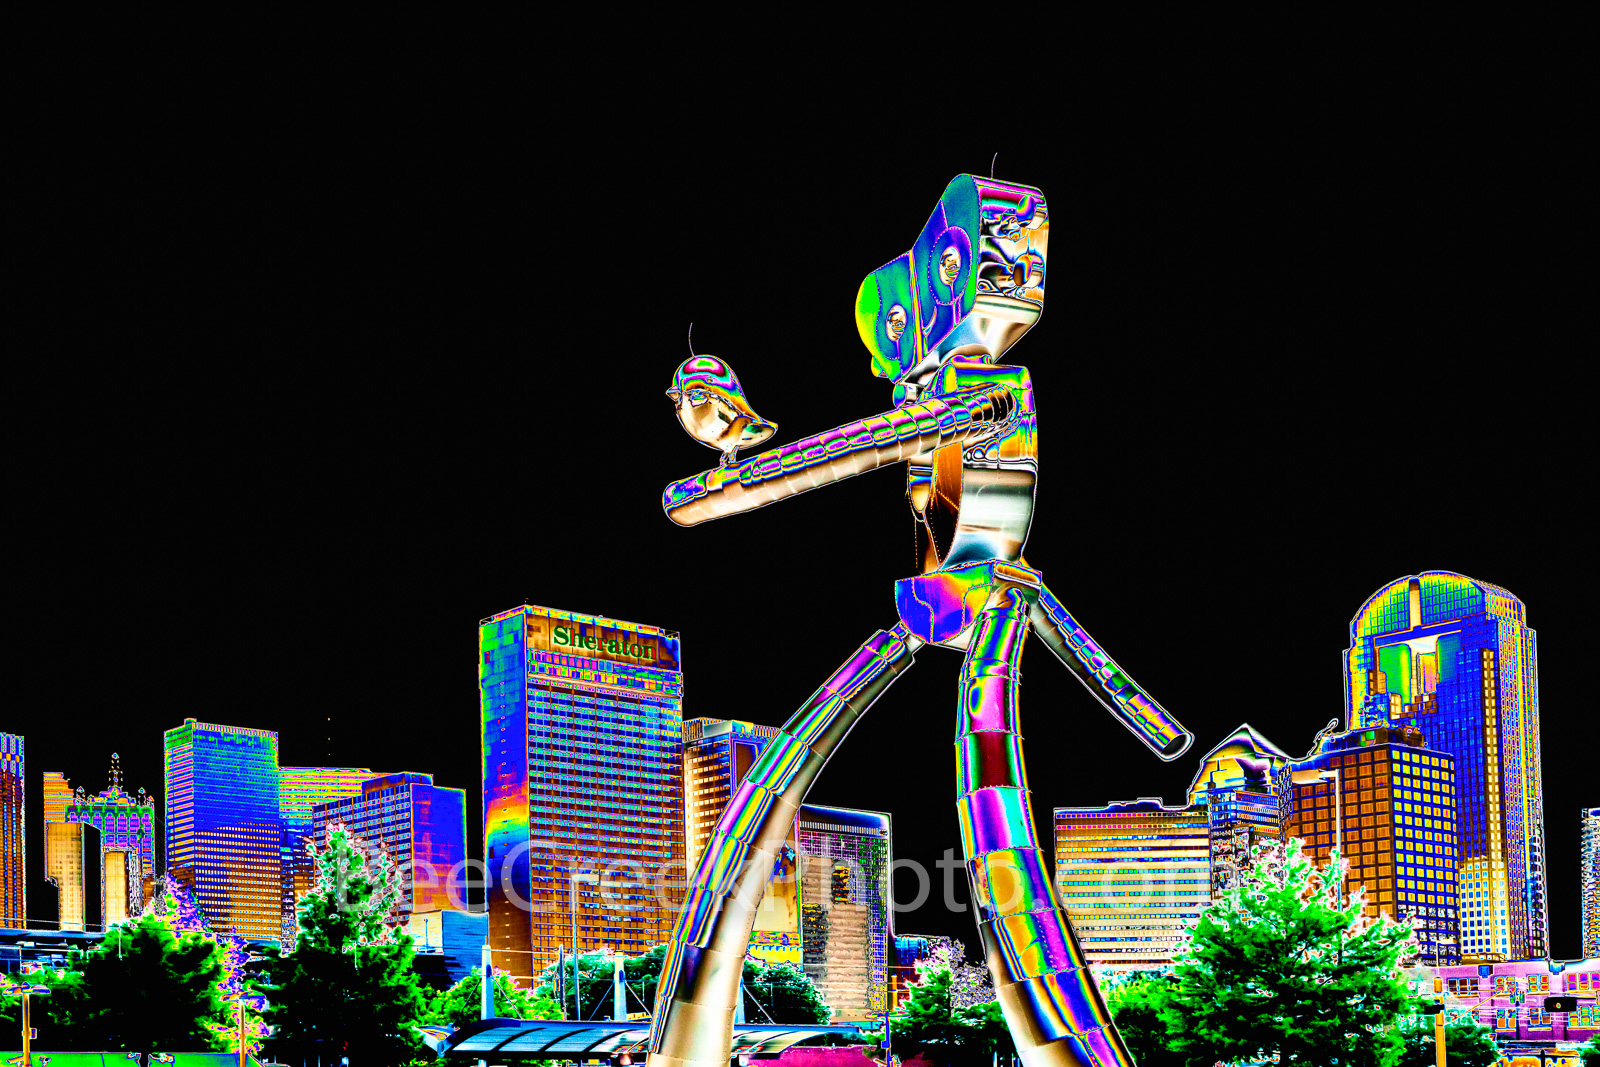 whismical, Dallas, Traveling Man, psychedelic, digital, digital art, Dallas skyline, traveling man, dallas, skyline, train, mass transit, scuplture, robot, strolling, bird, birds, Deep Ellum, cityscap, photo